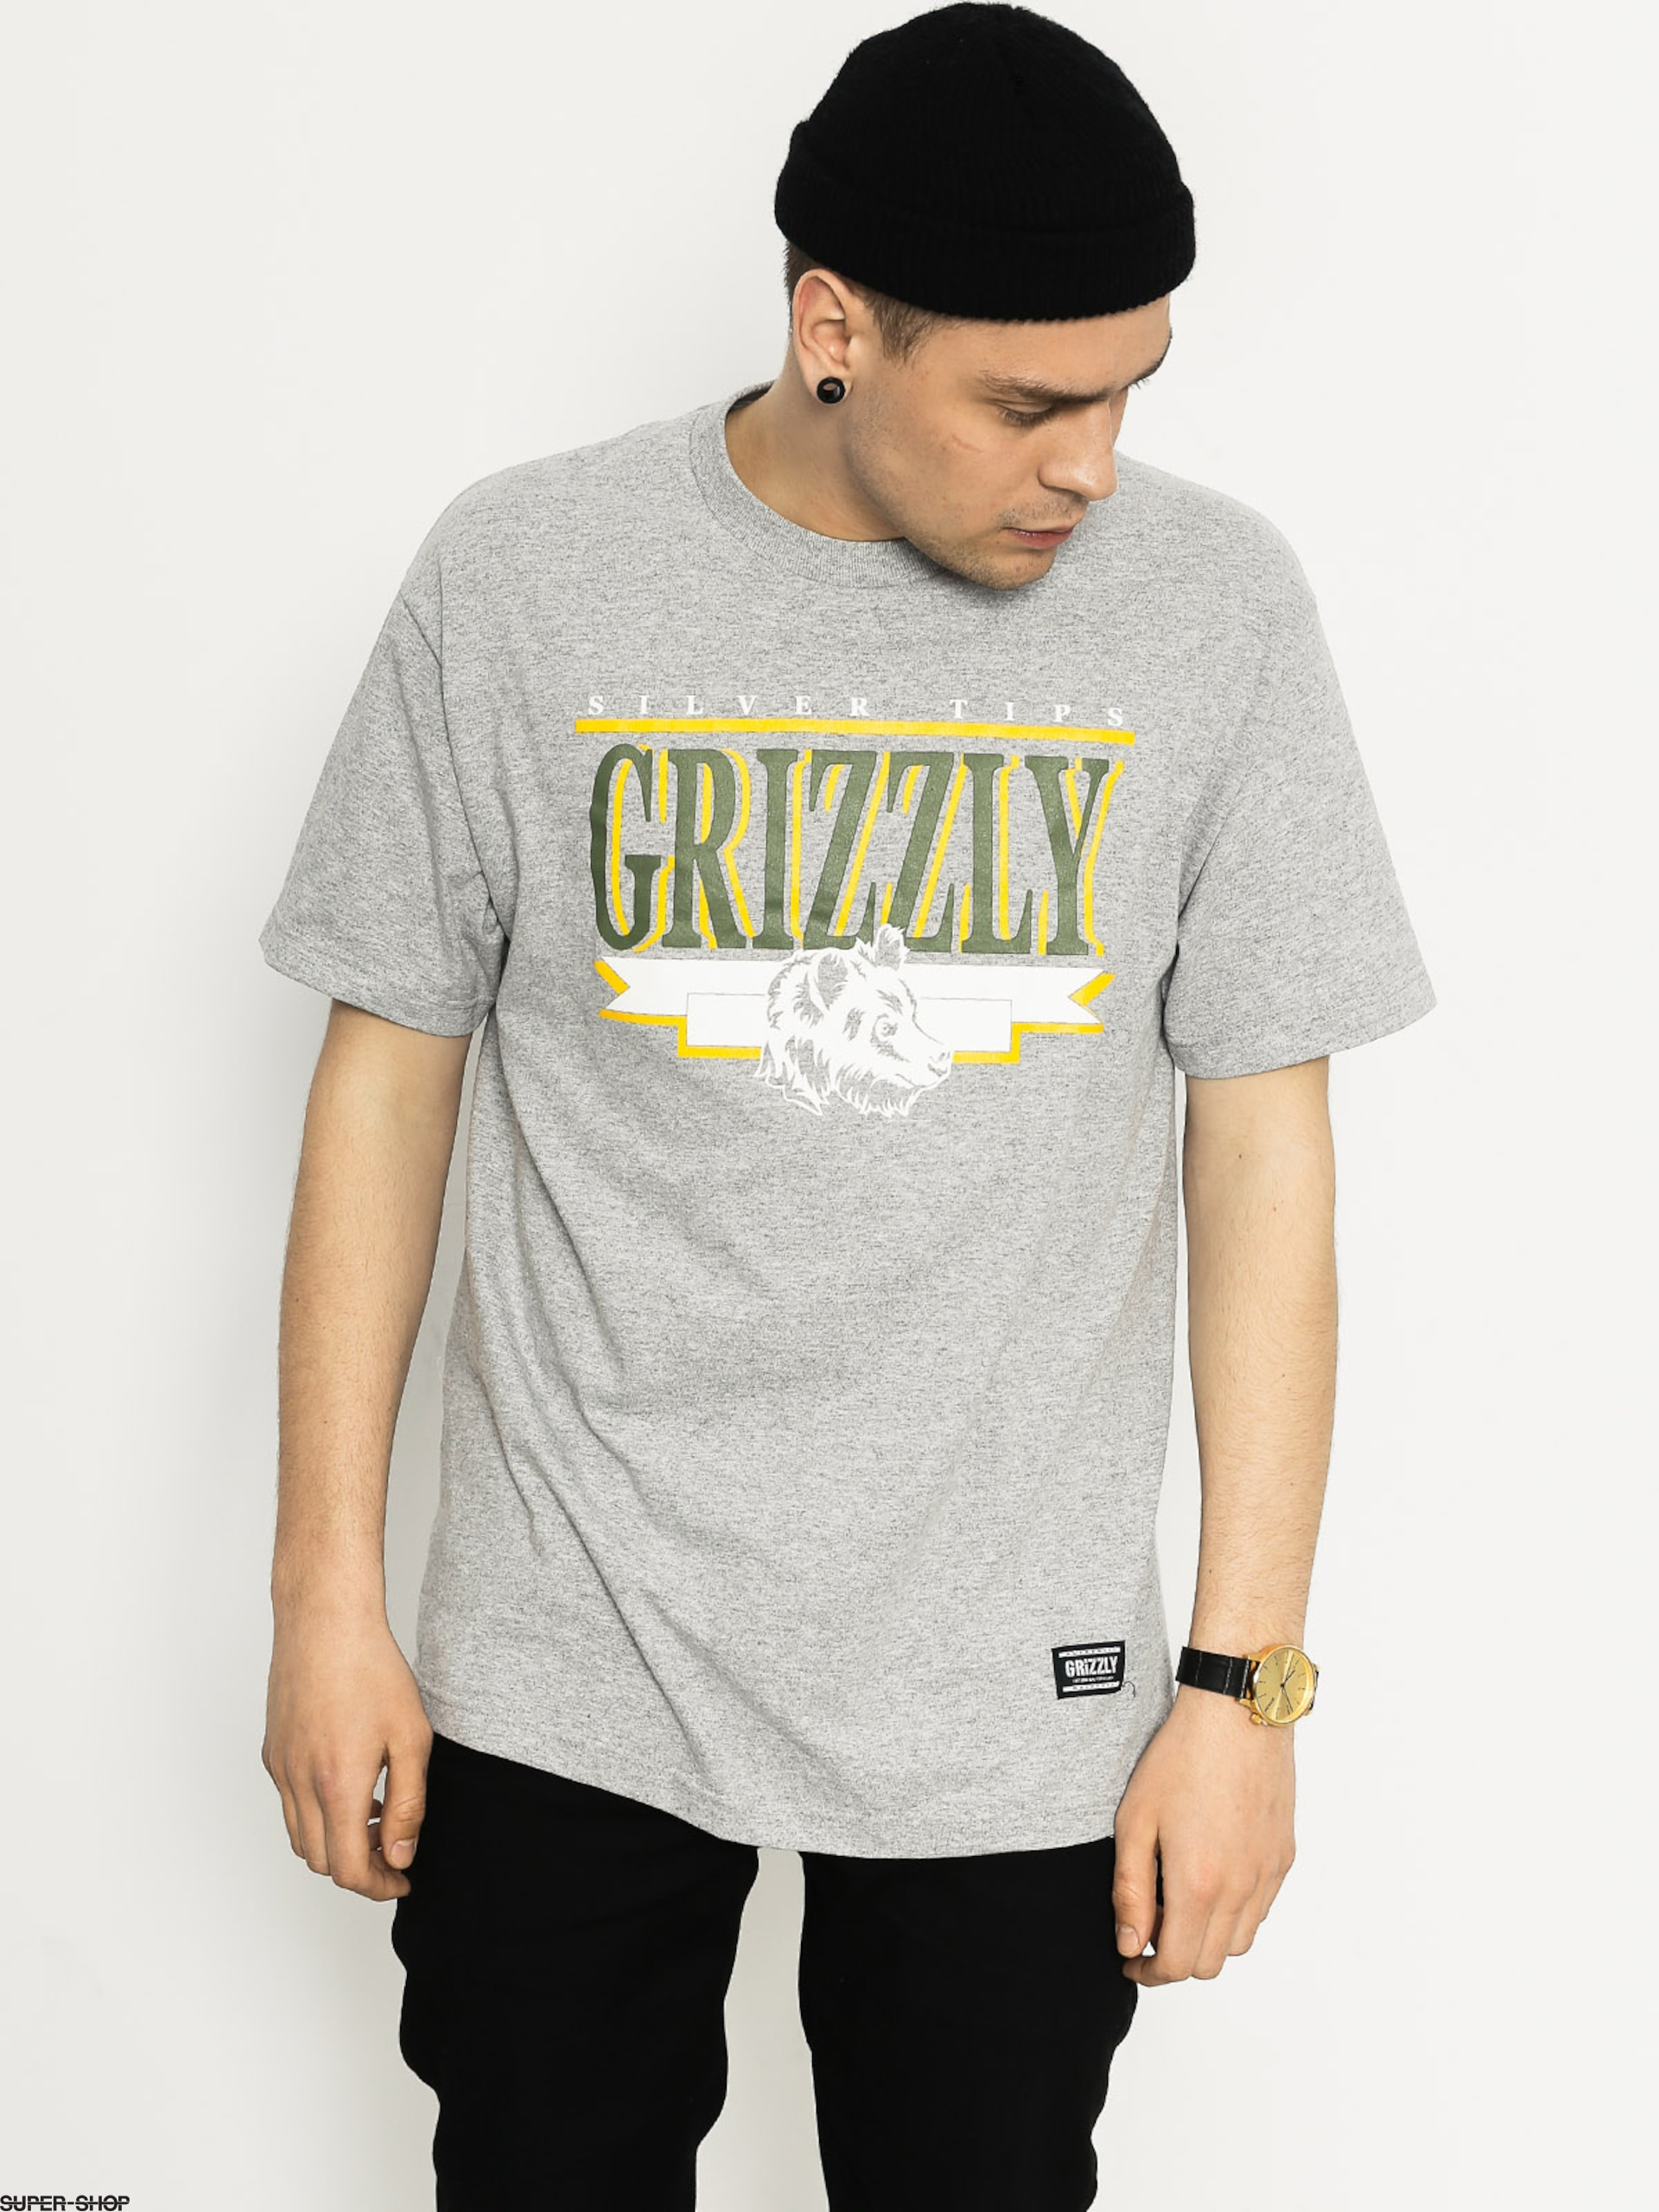 Grizzly Griptape T-shirt Silver Tip Cup (heather grey)